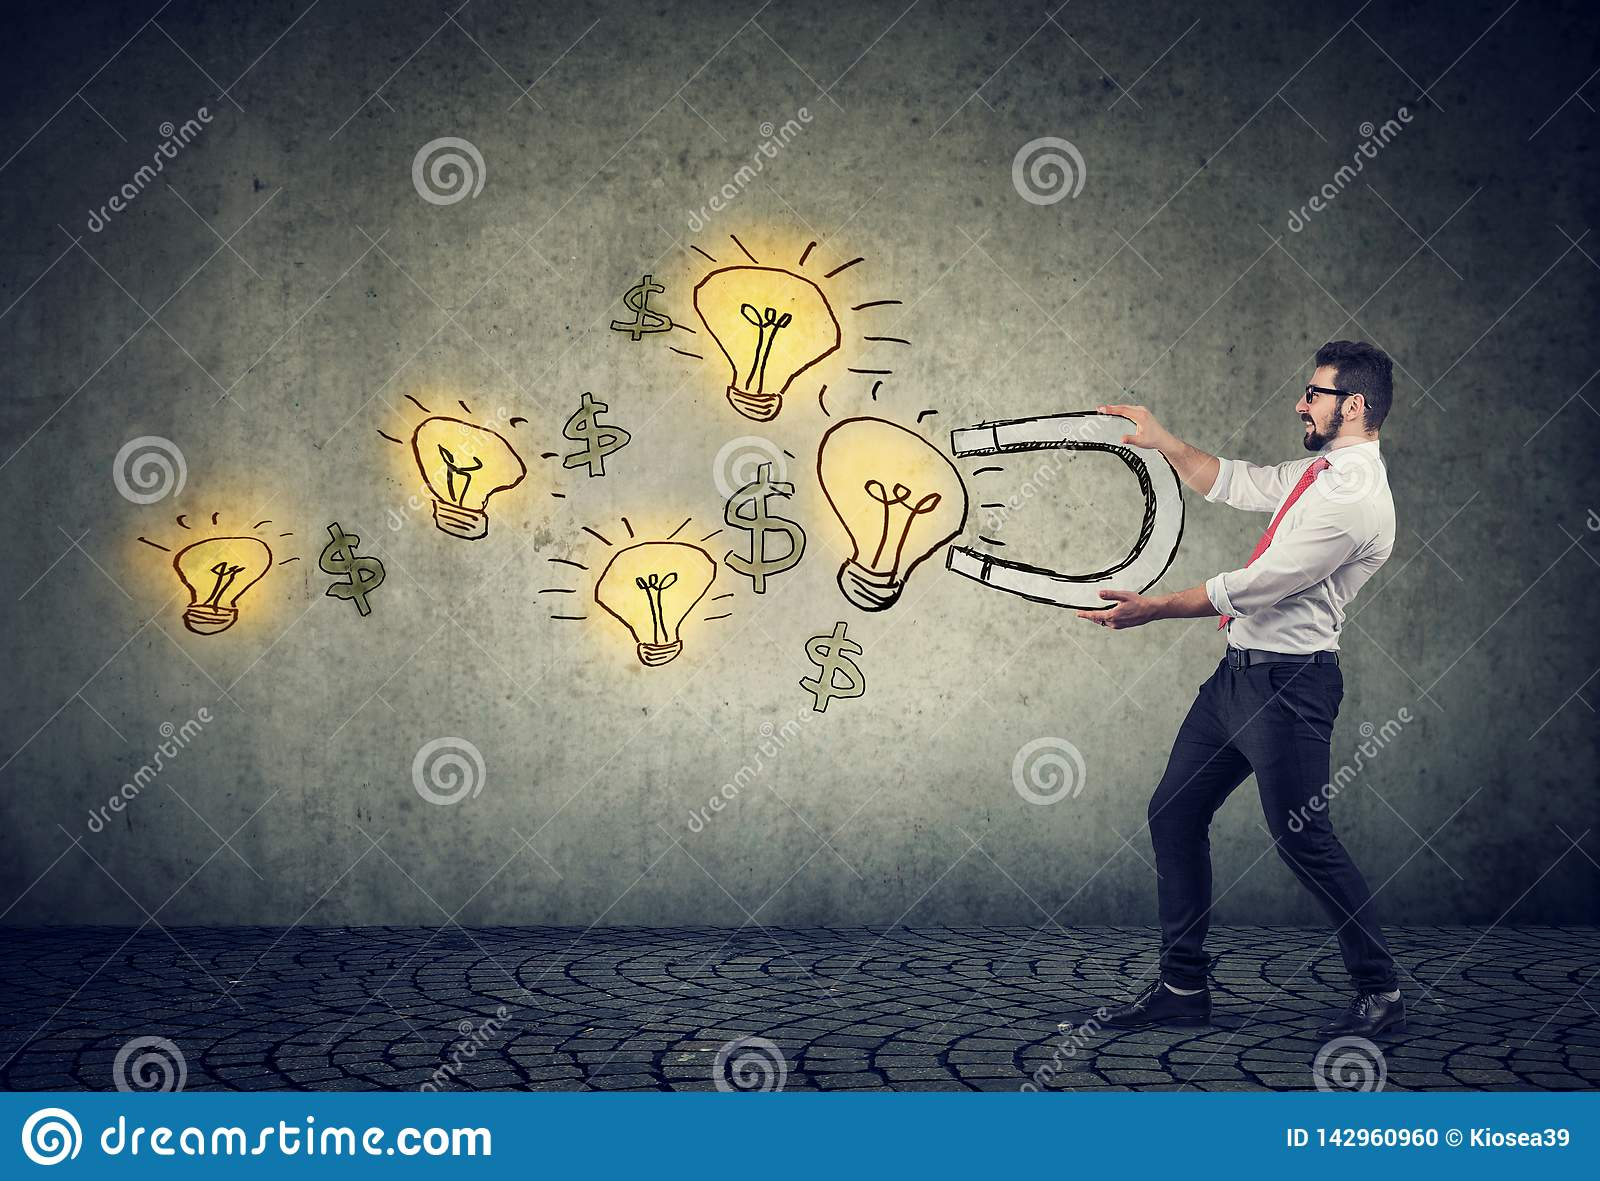 4 456 Business Magnet Photos Free Royalty Free Stock Photos From Dreamstime